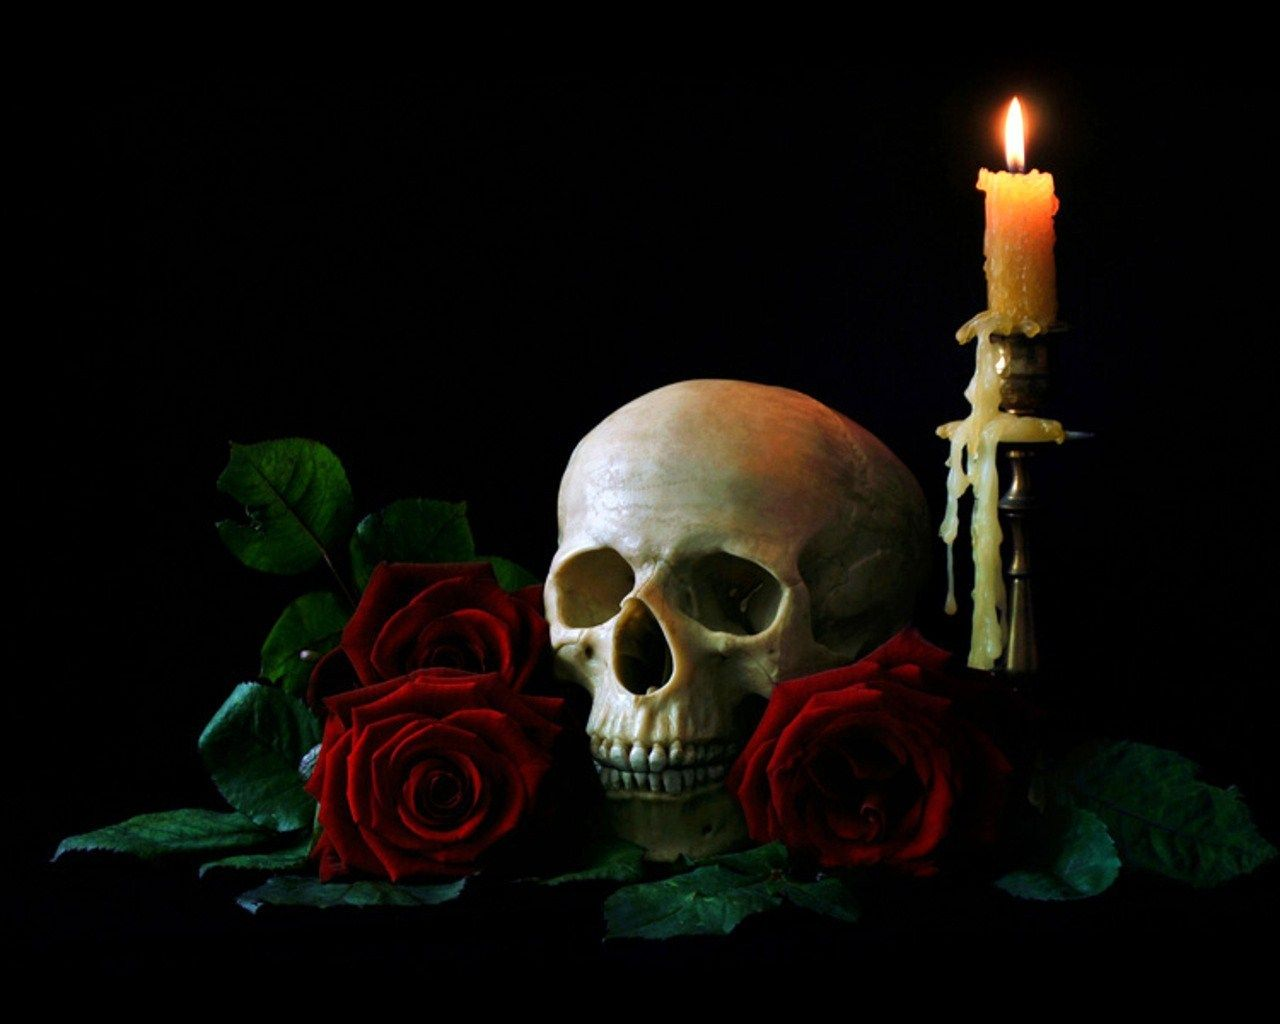 Design Gothic Candles candles by candlelight wallpaper 19541662 fanpop fanclubs